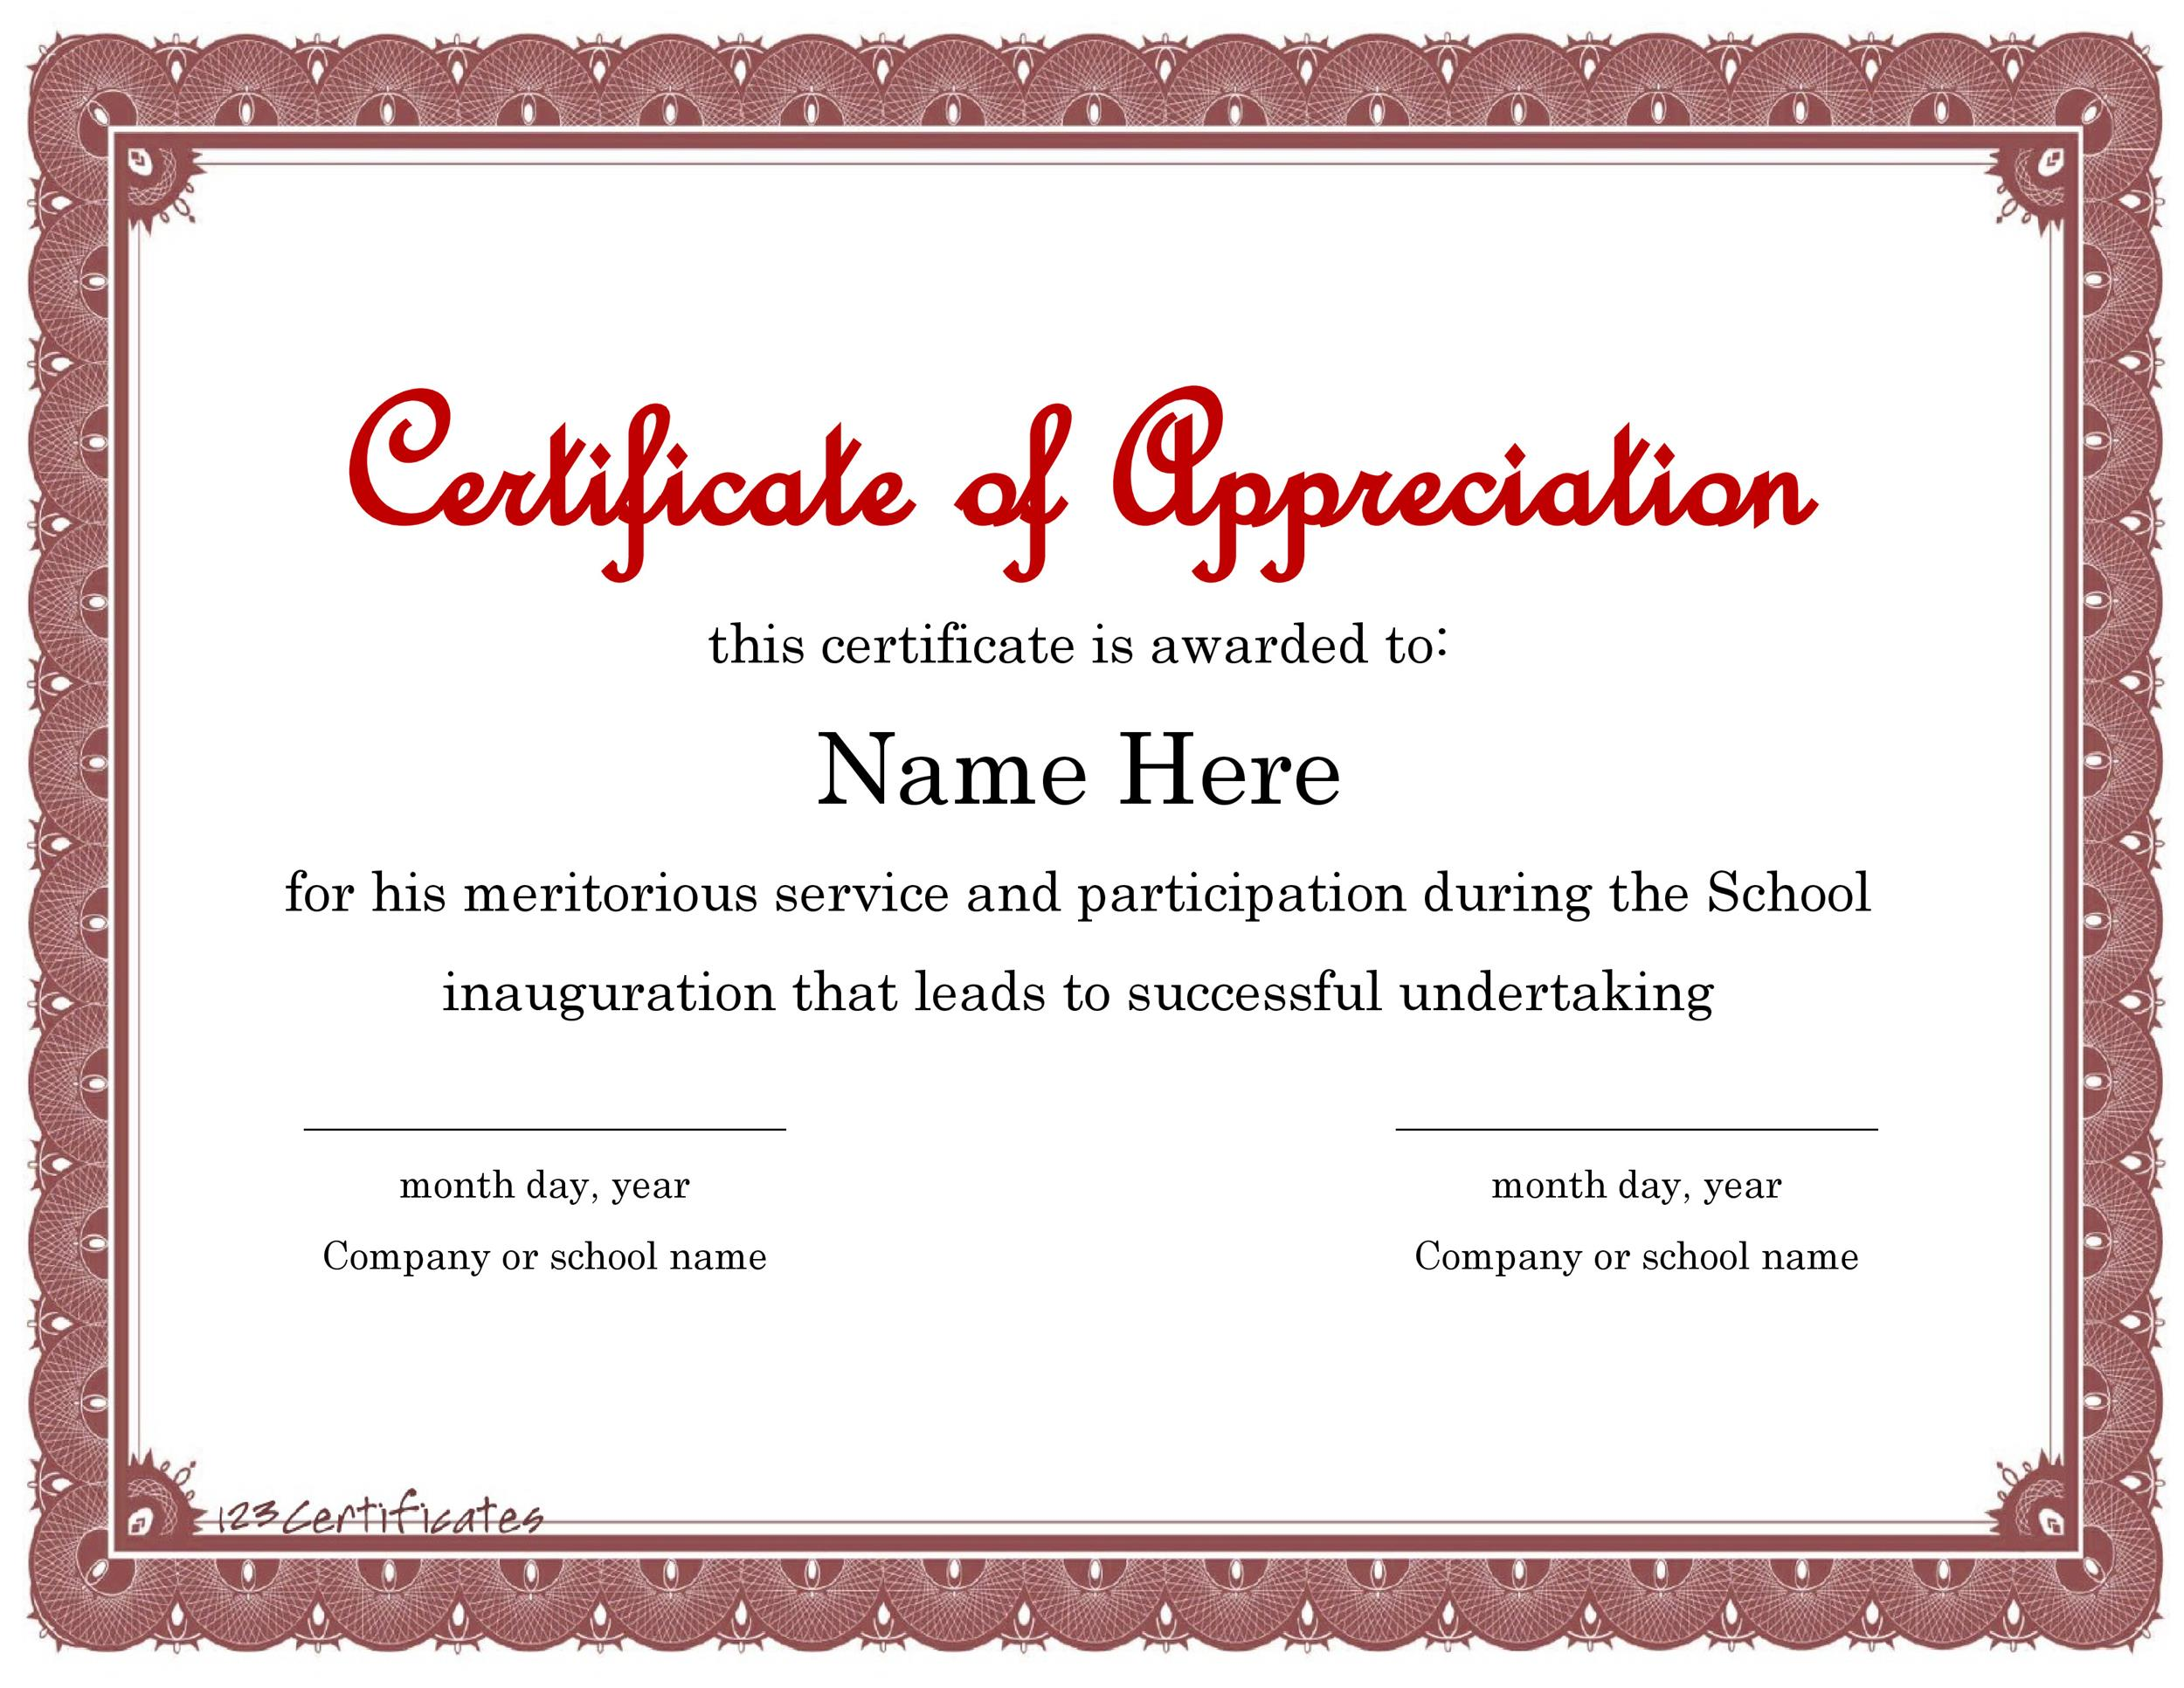 Printable Certificate Of Appreciation 01  Free Appreciation Certificate Templates